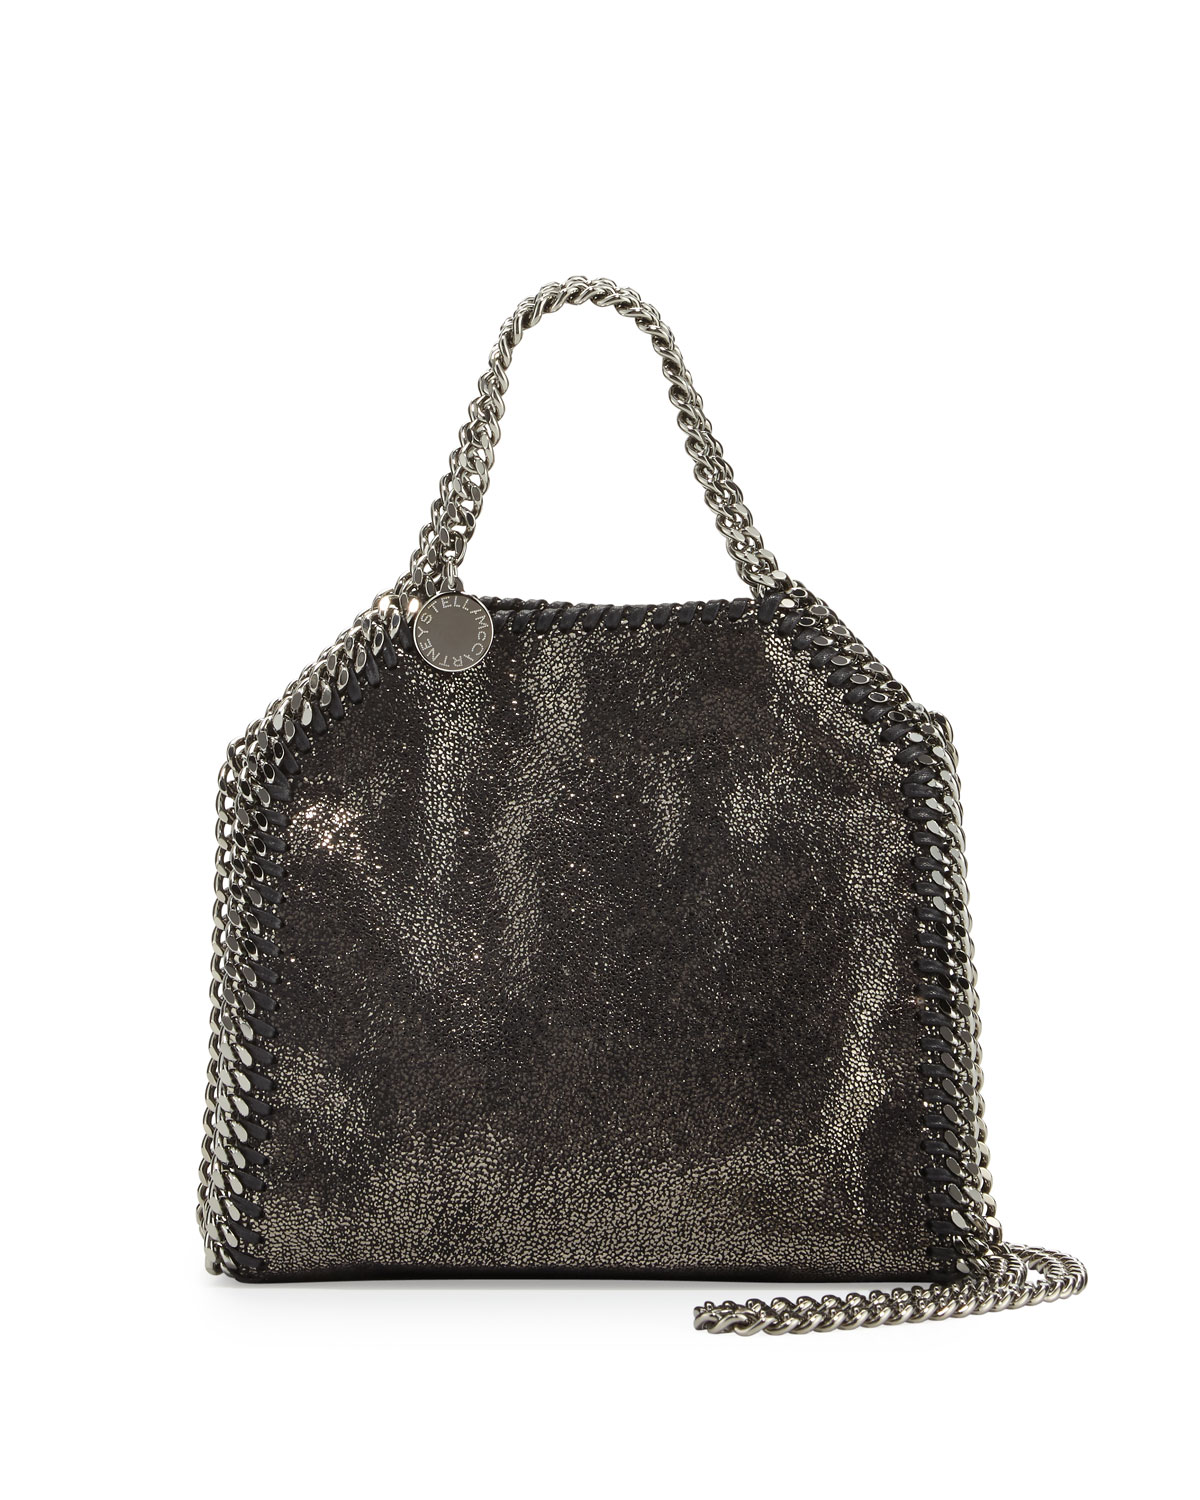 b53a20742a72 Stella McCartney Falabella Tiny Shoulder Bag